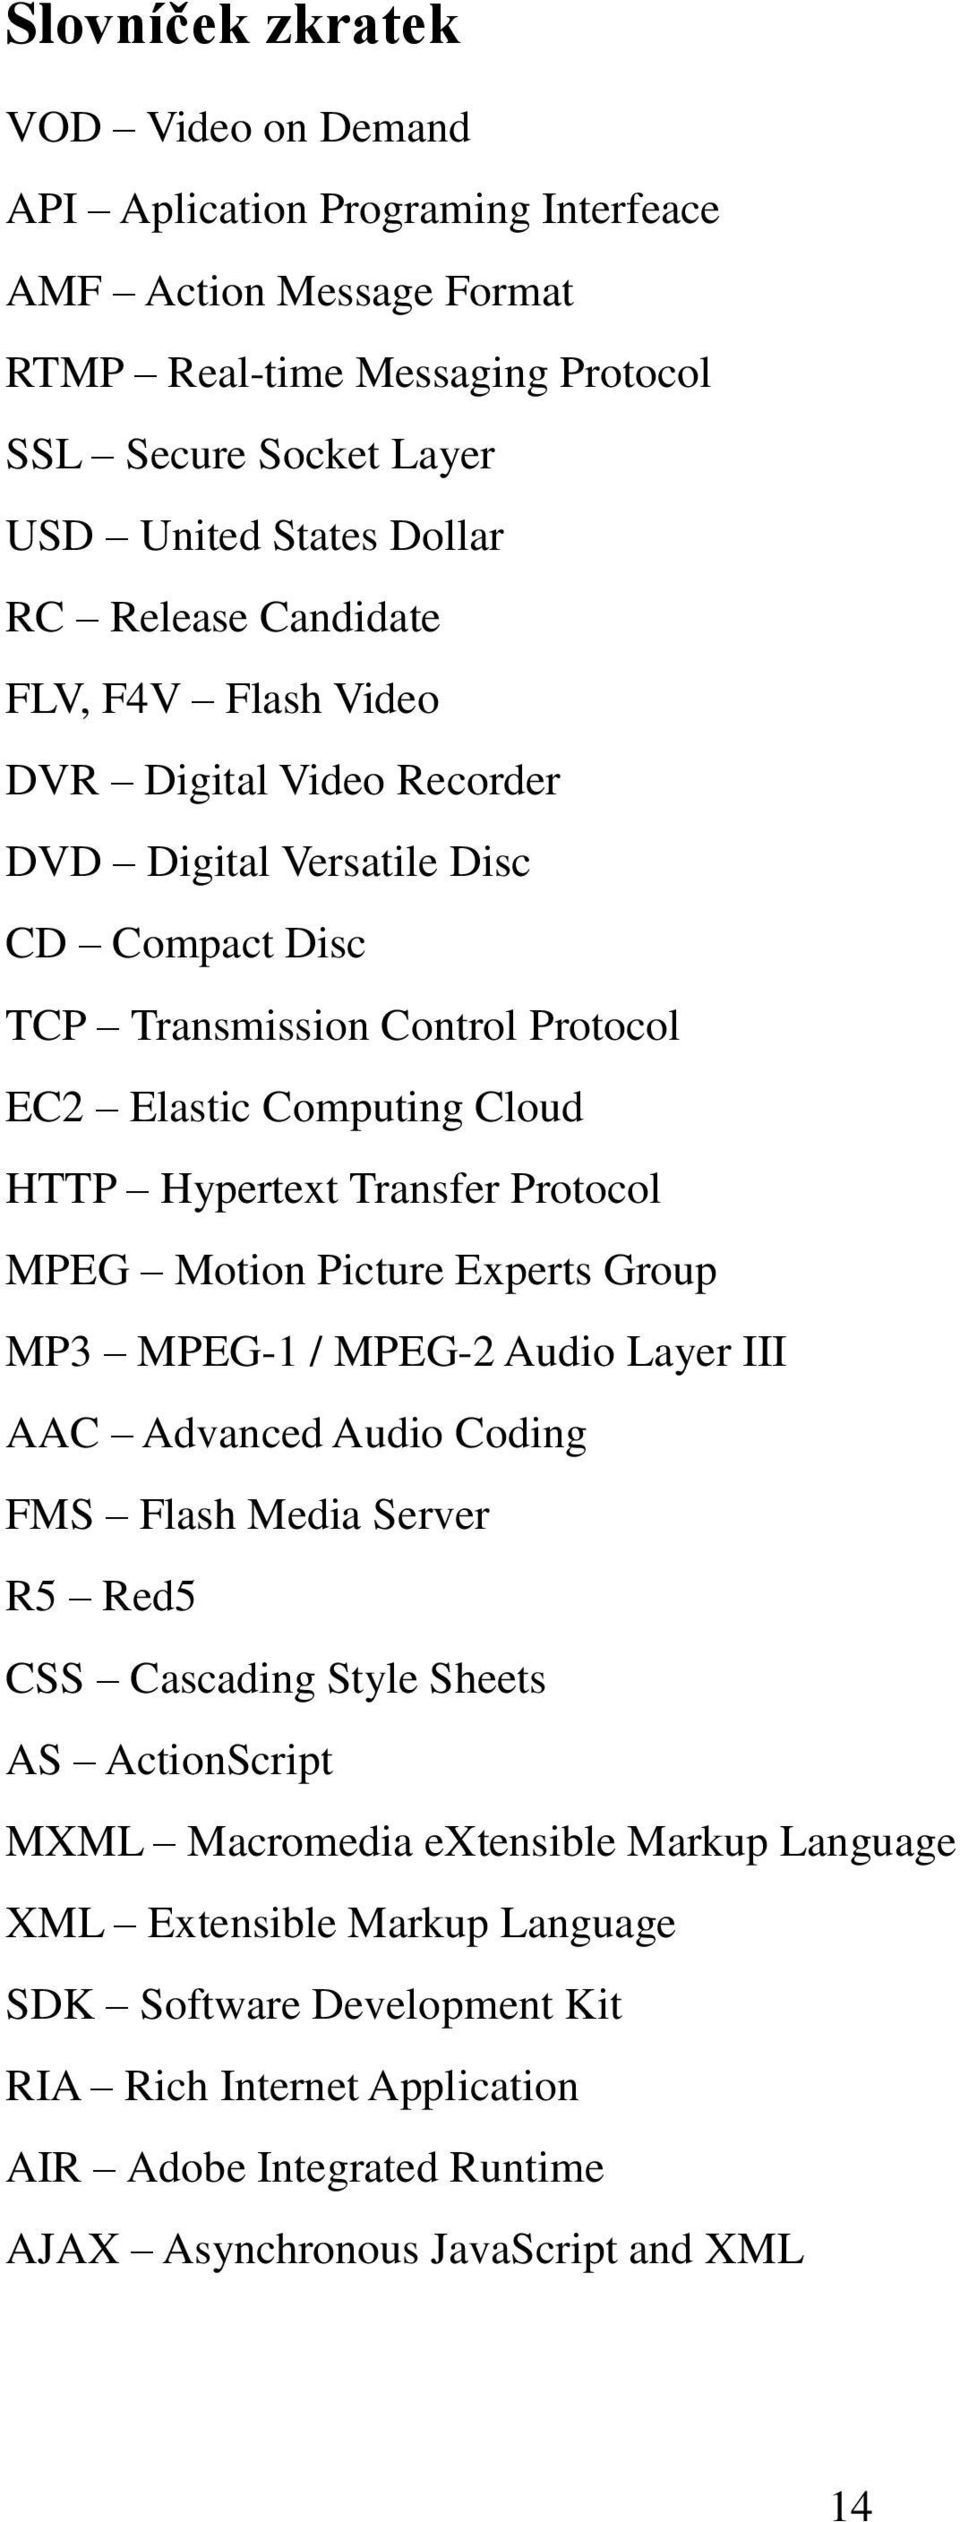 Transfer Protocol MPEG Motion Picture Experts Group MP3 MPEG-1 / MPEG-2 Audio Layer III AAC Advanced Audio Coding FMS Flash Media Server R5 Red5 CSS Cascading Style Sheets AS ActionScript